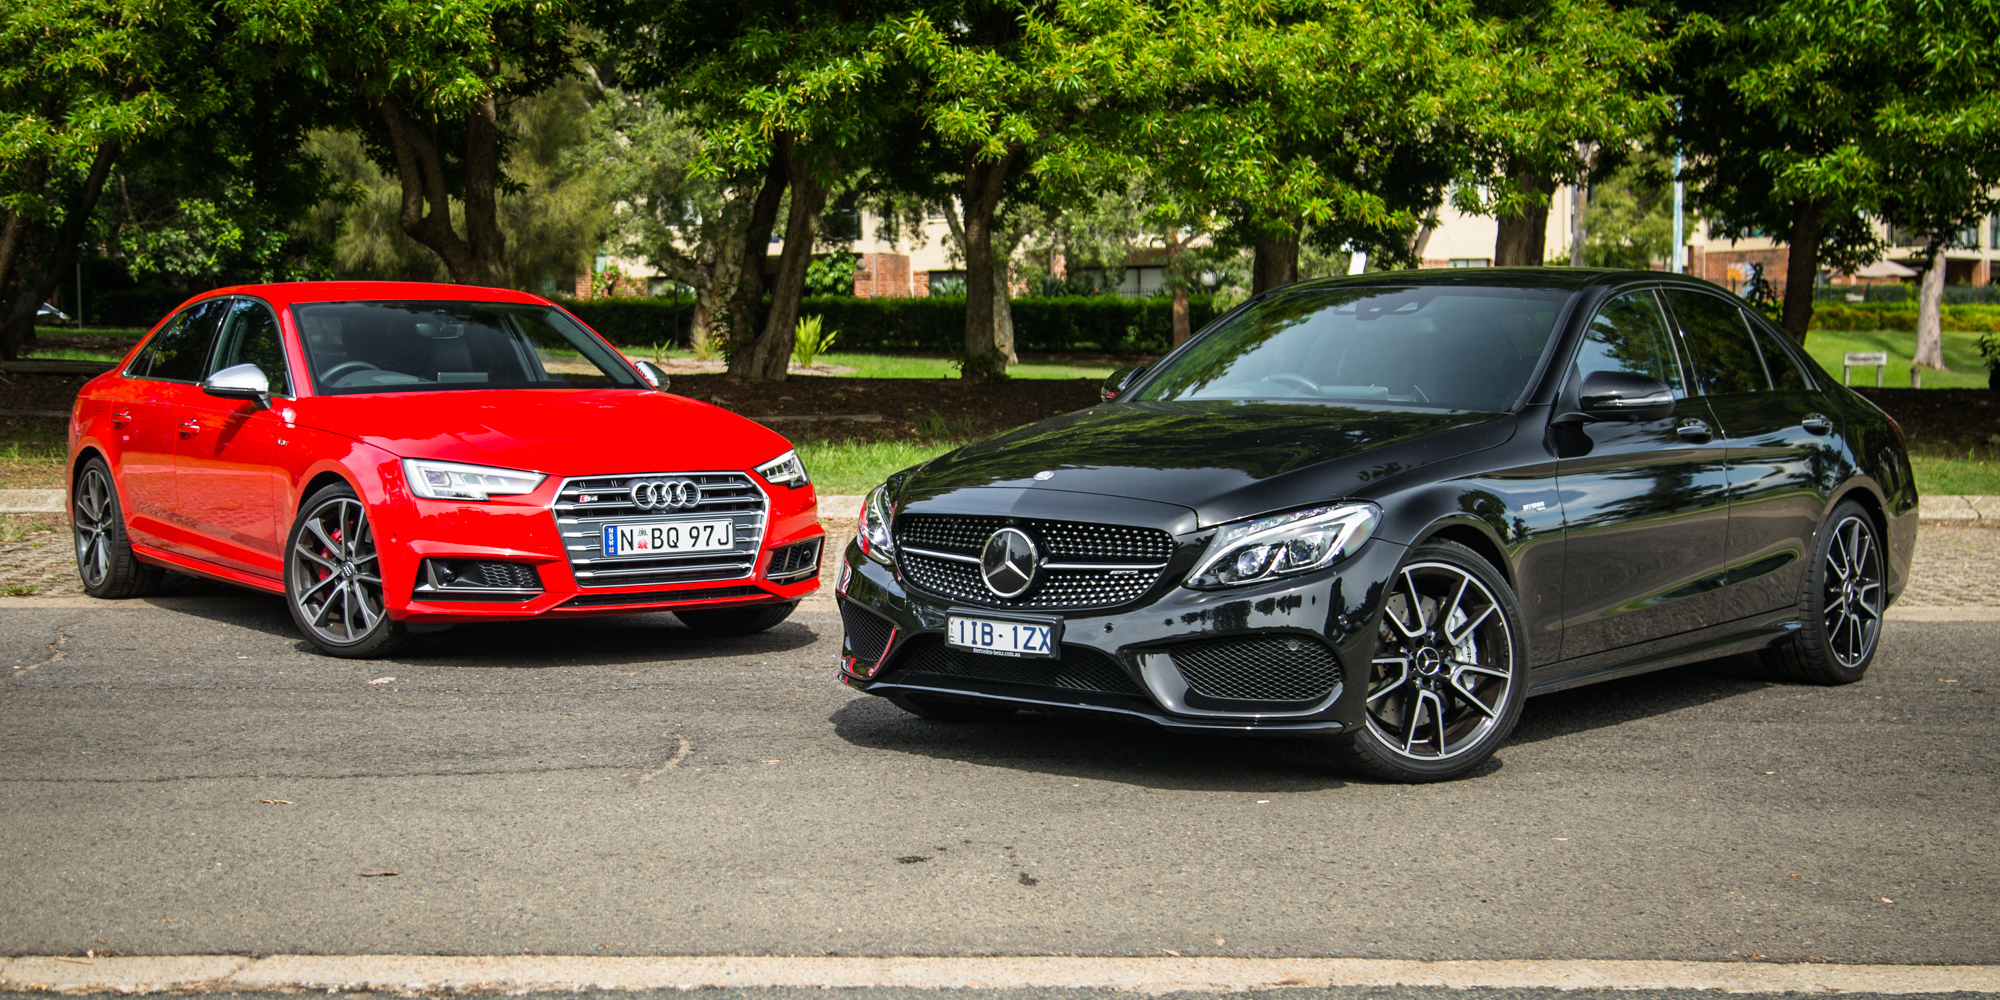 C43 Amg Sedan >> Audi S4 v Mercedes-AMG C43 sedan comparison - Photos